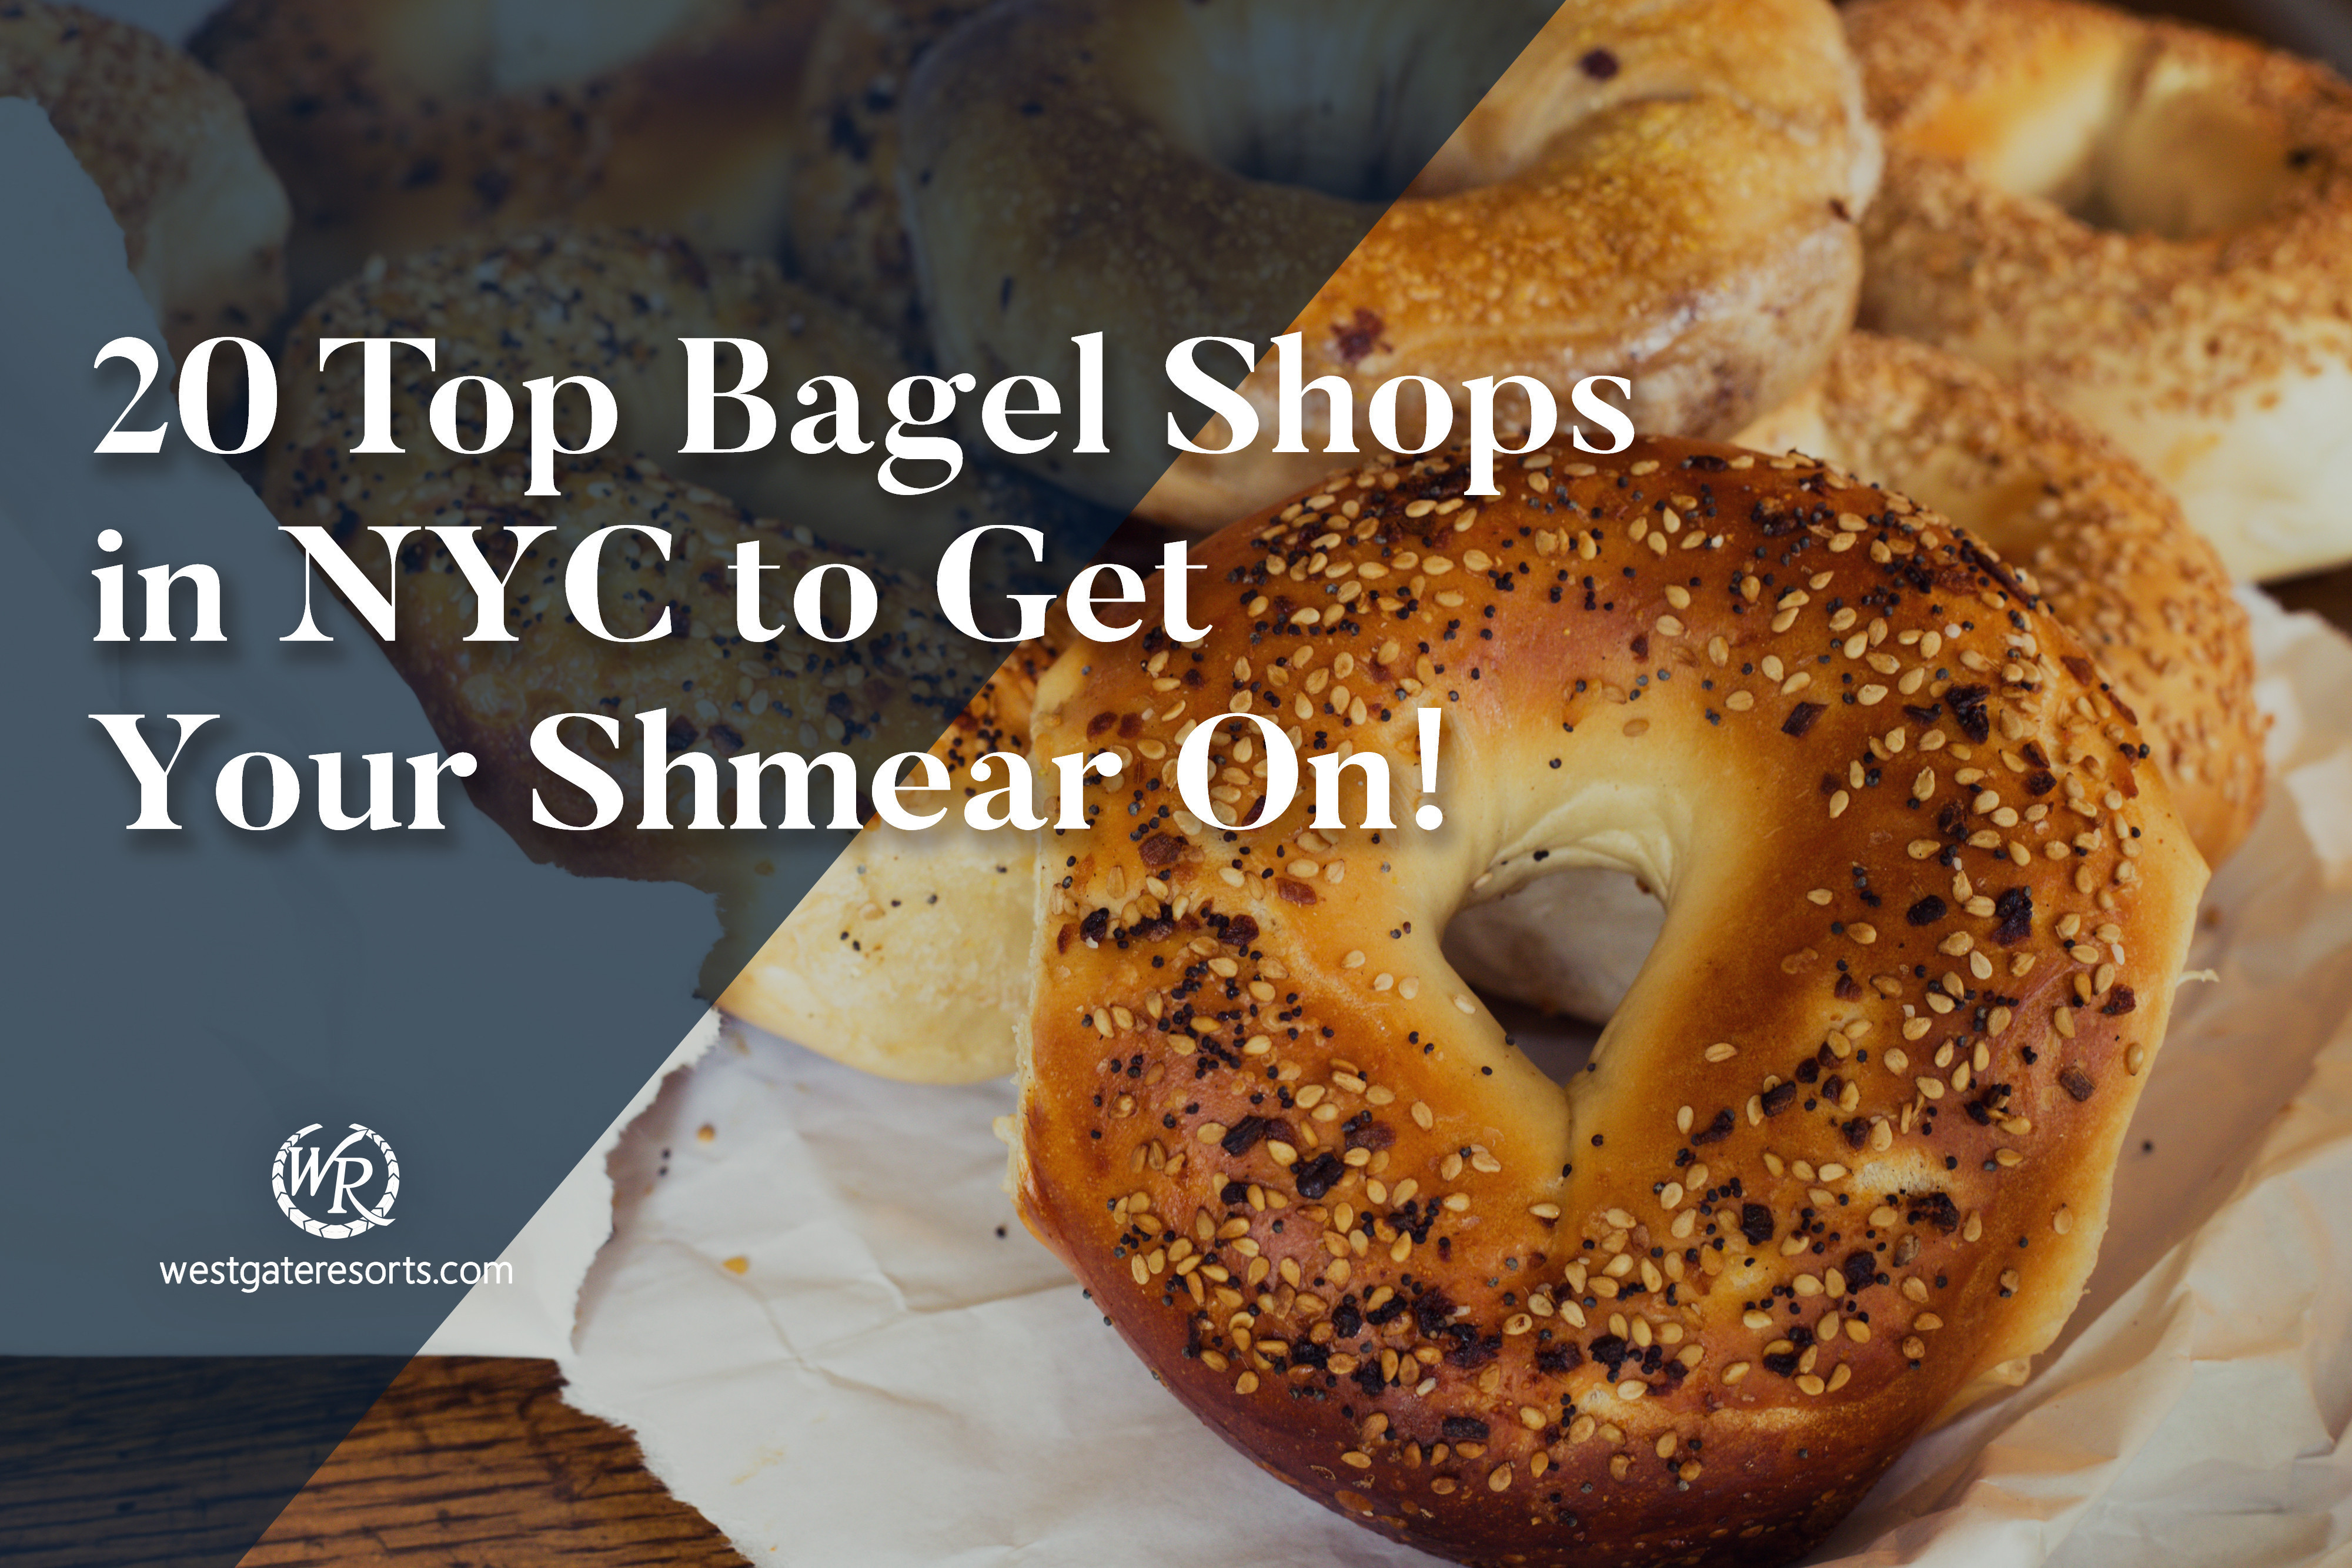 20 Top Bagel Shops in NYC to Get Your Shmear On!